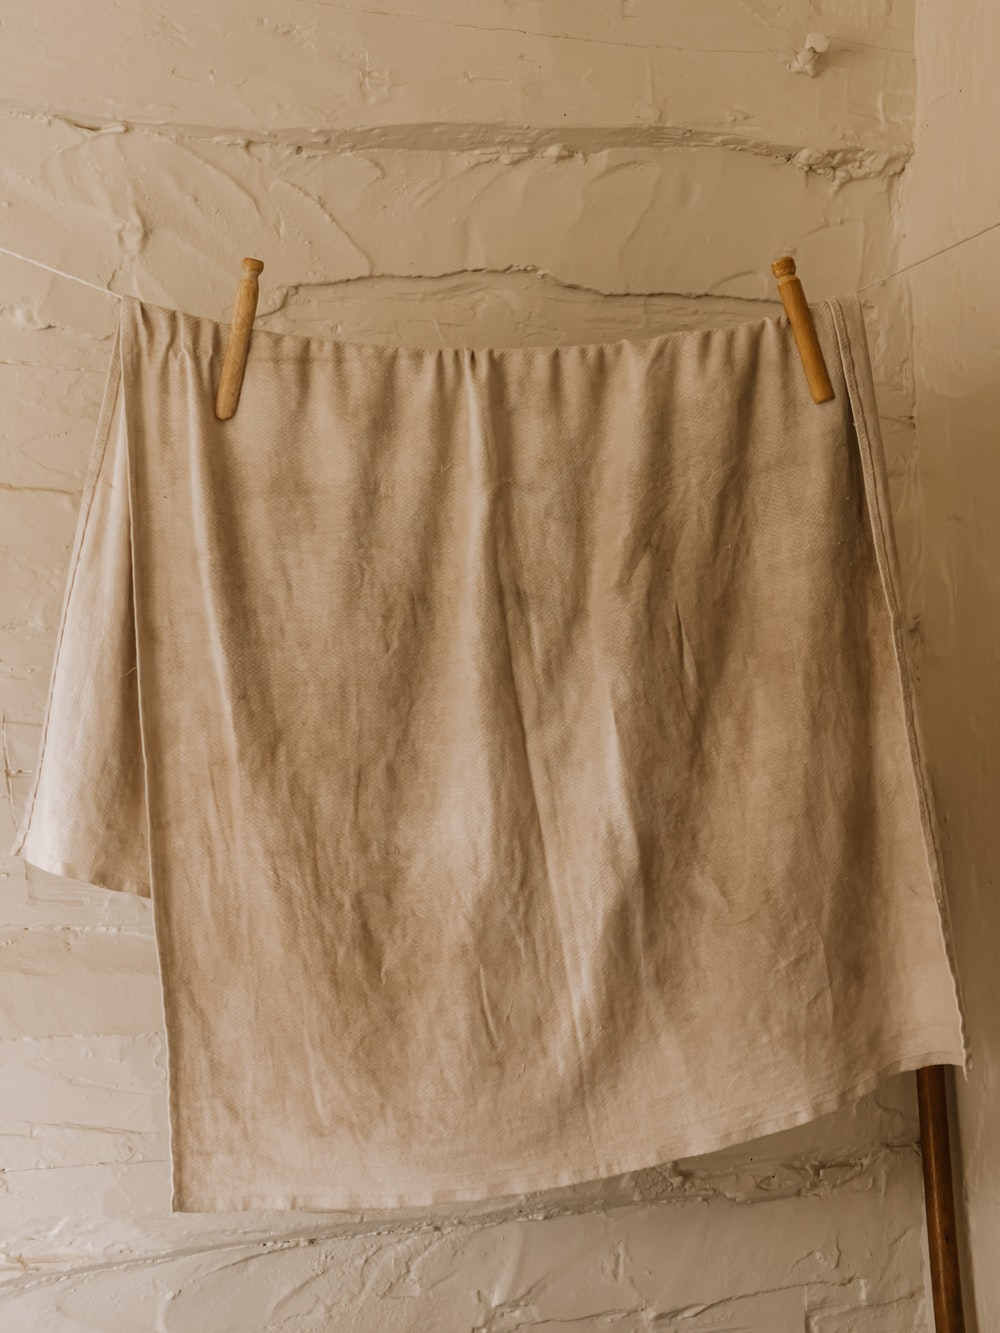 white bath towel on brown wooden clothes hanger